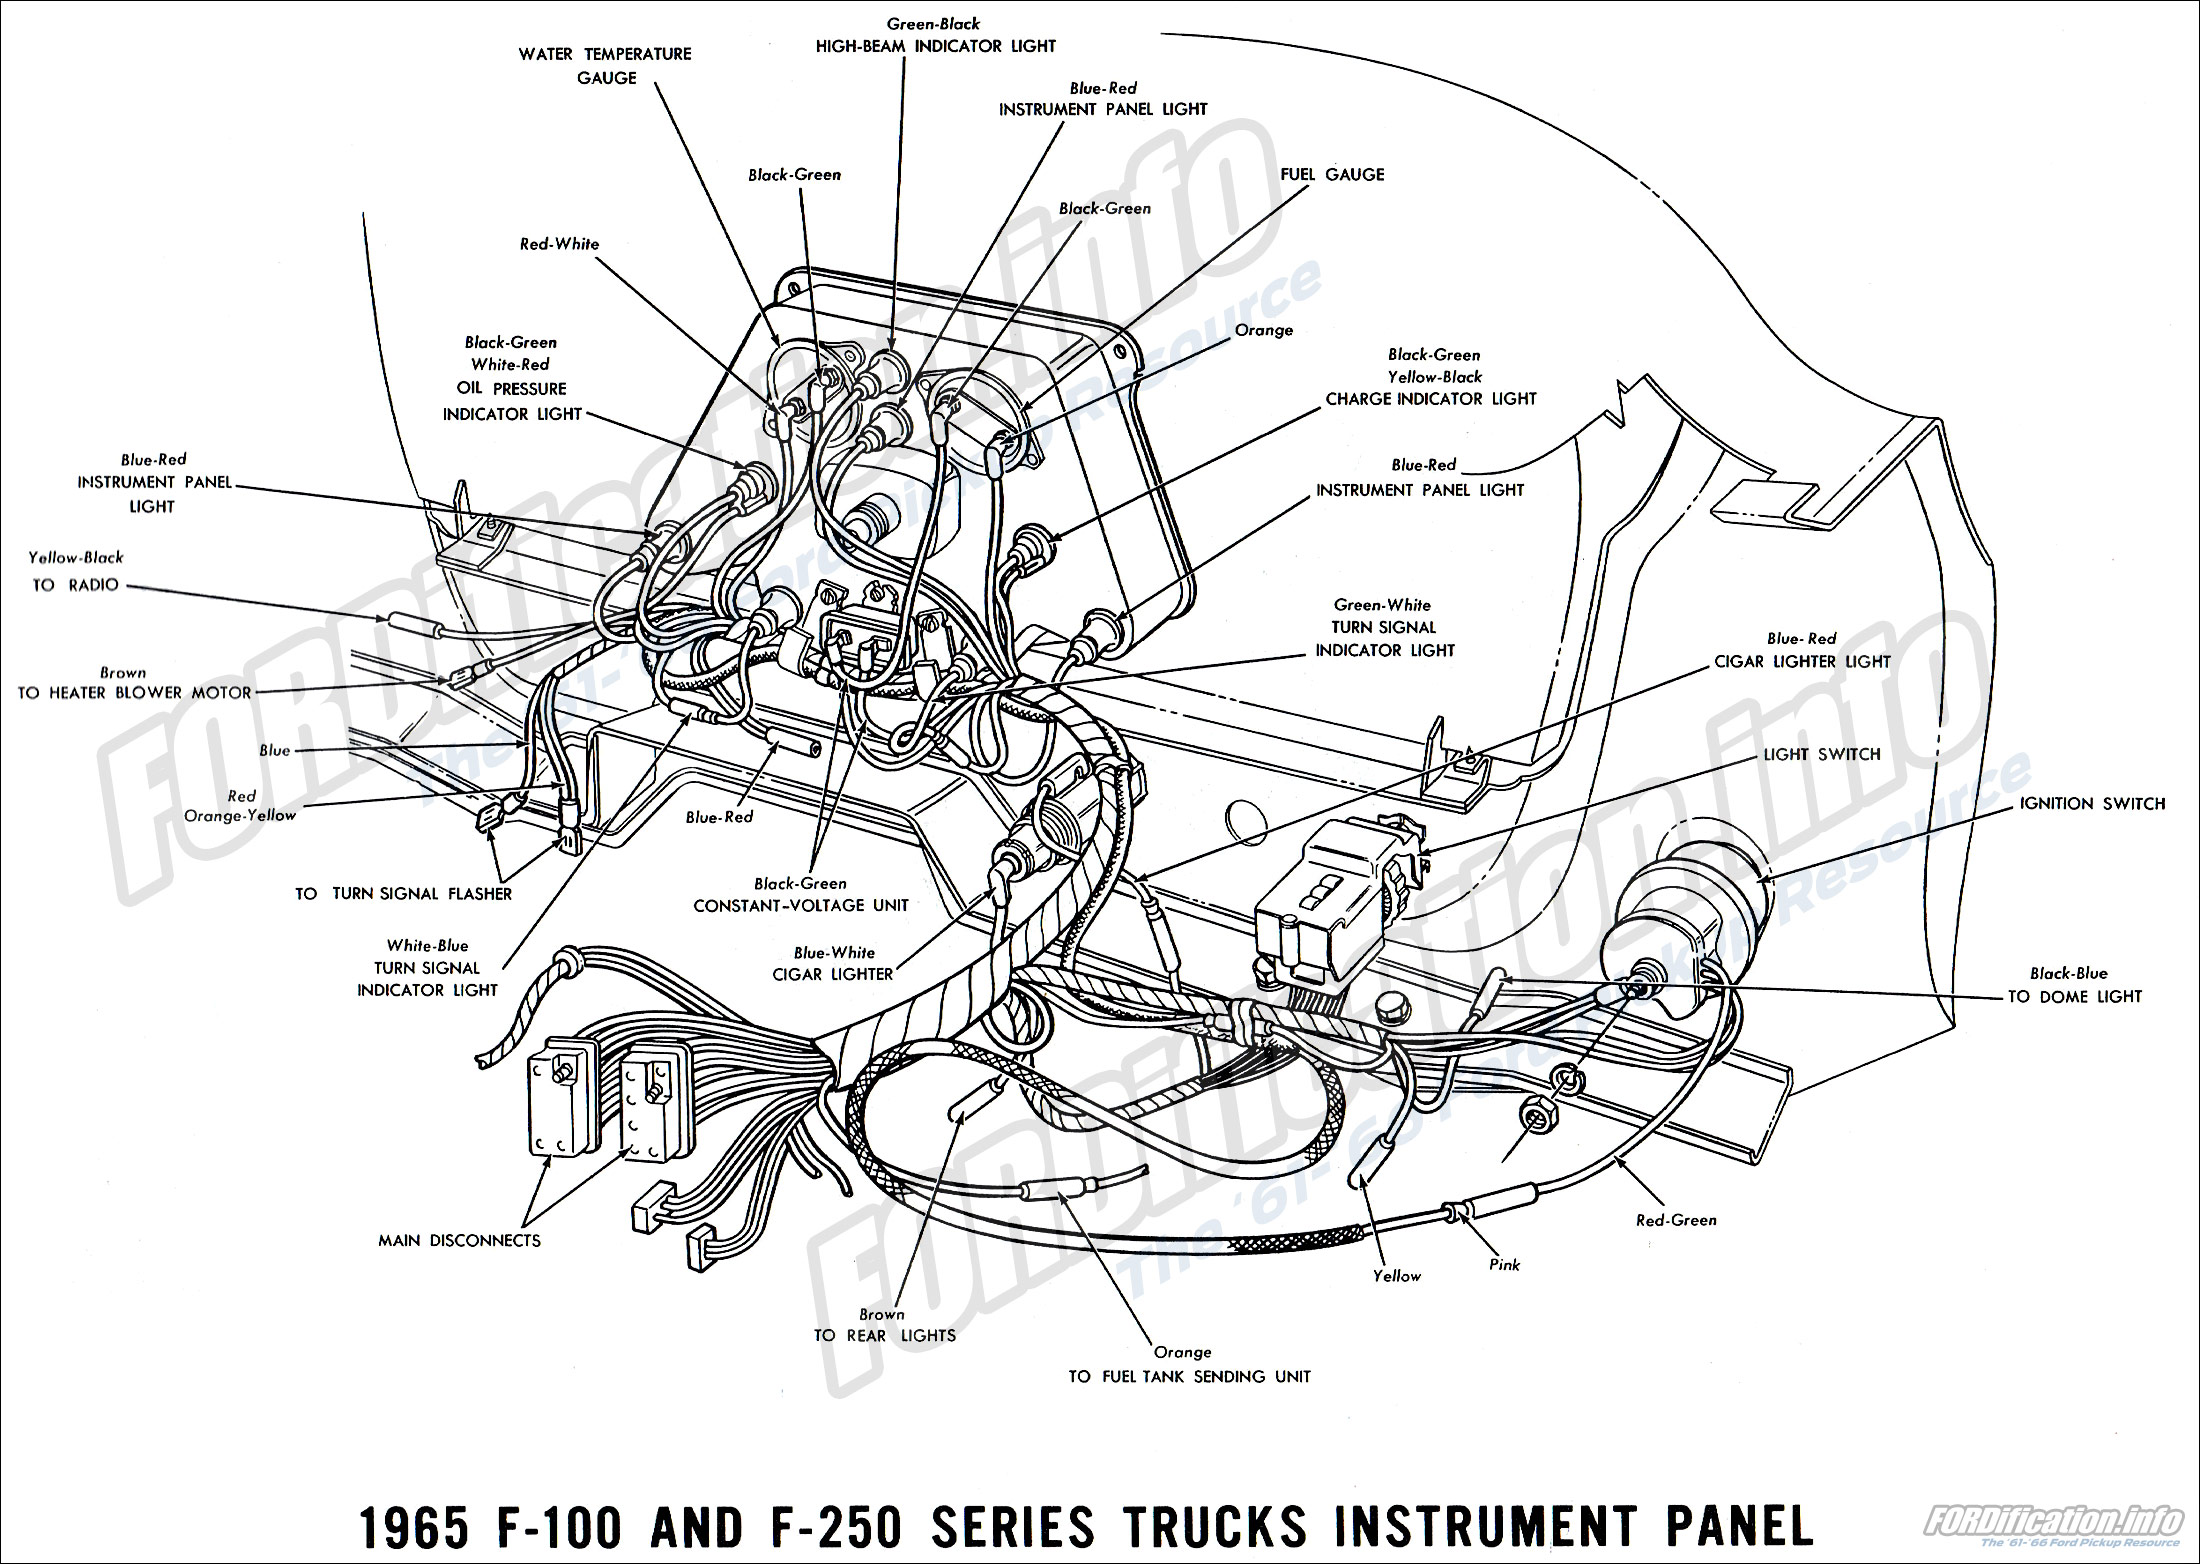 1965 ford truck wiring diagrams - fordification.info - the ... 1965 ford truck wiring